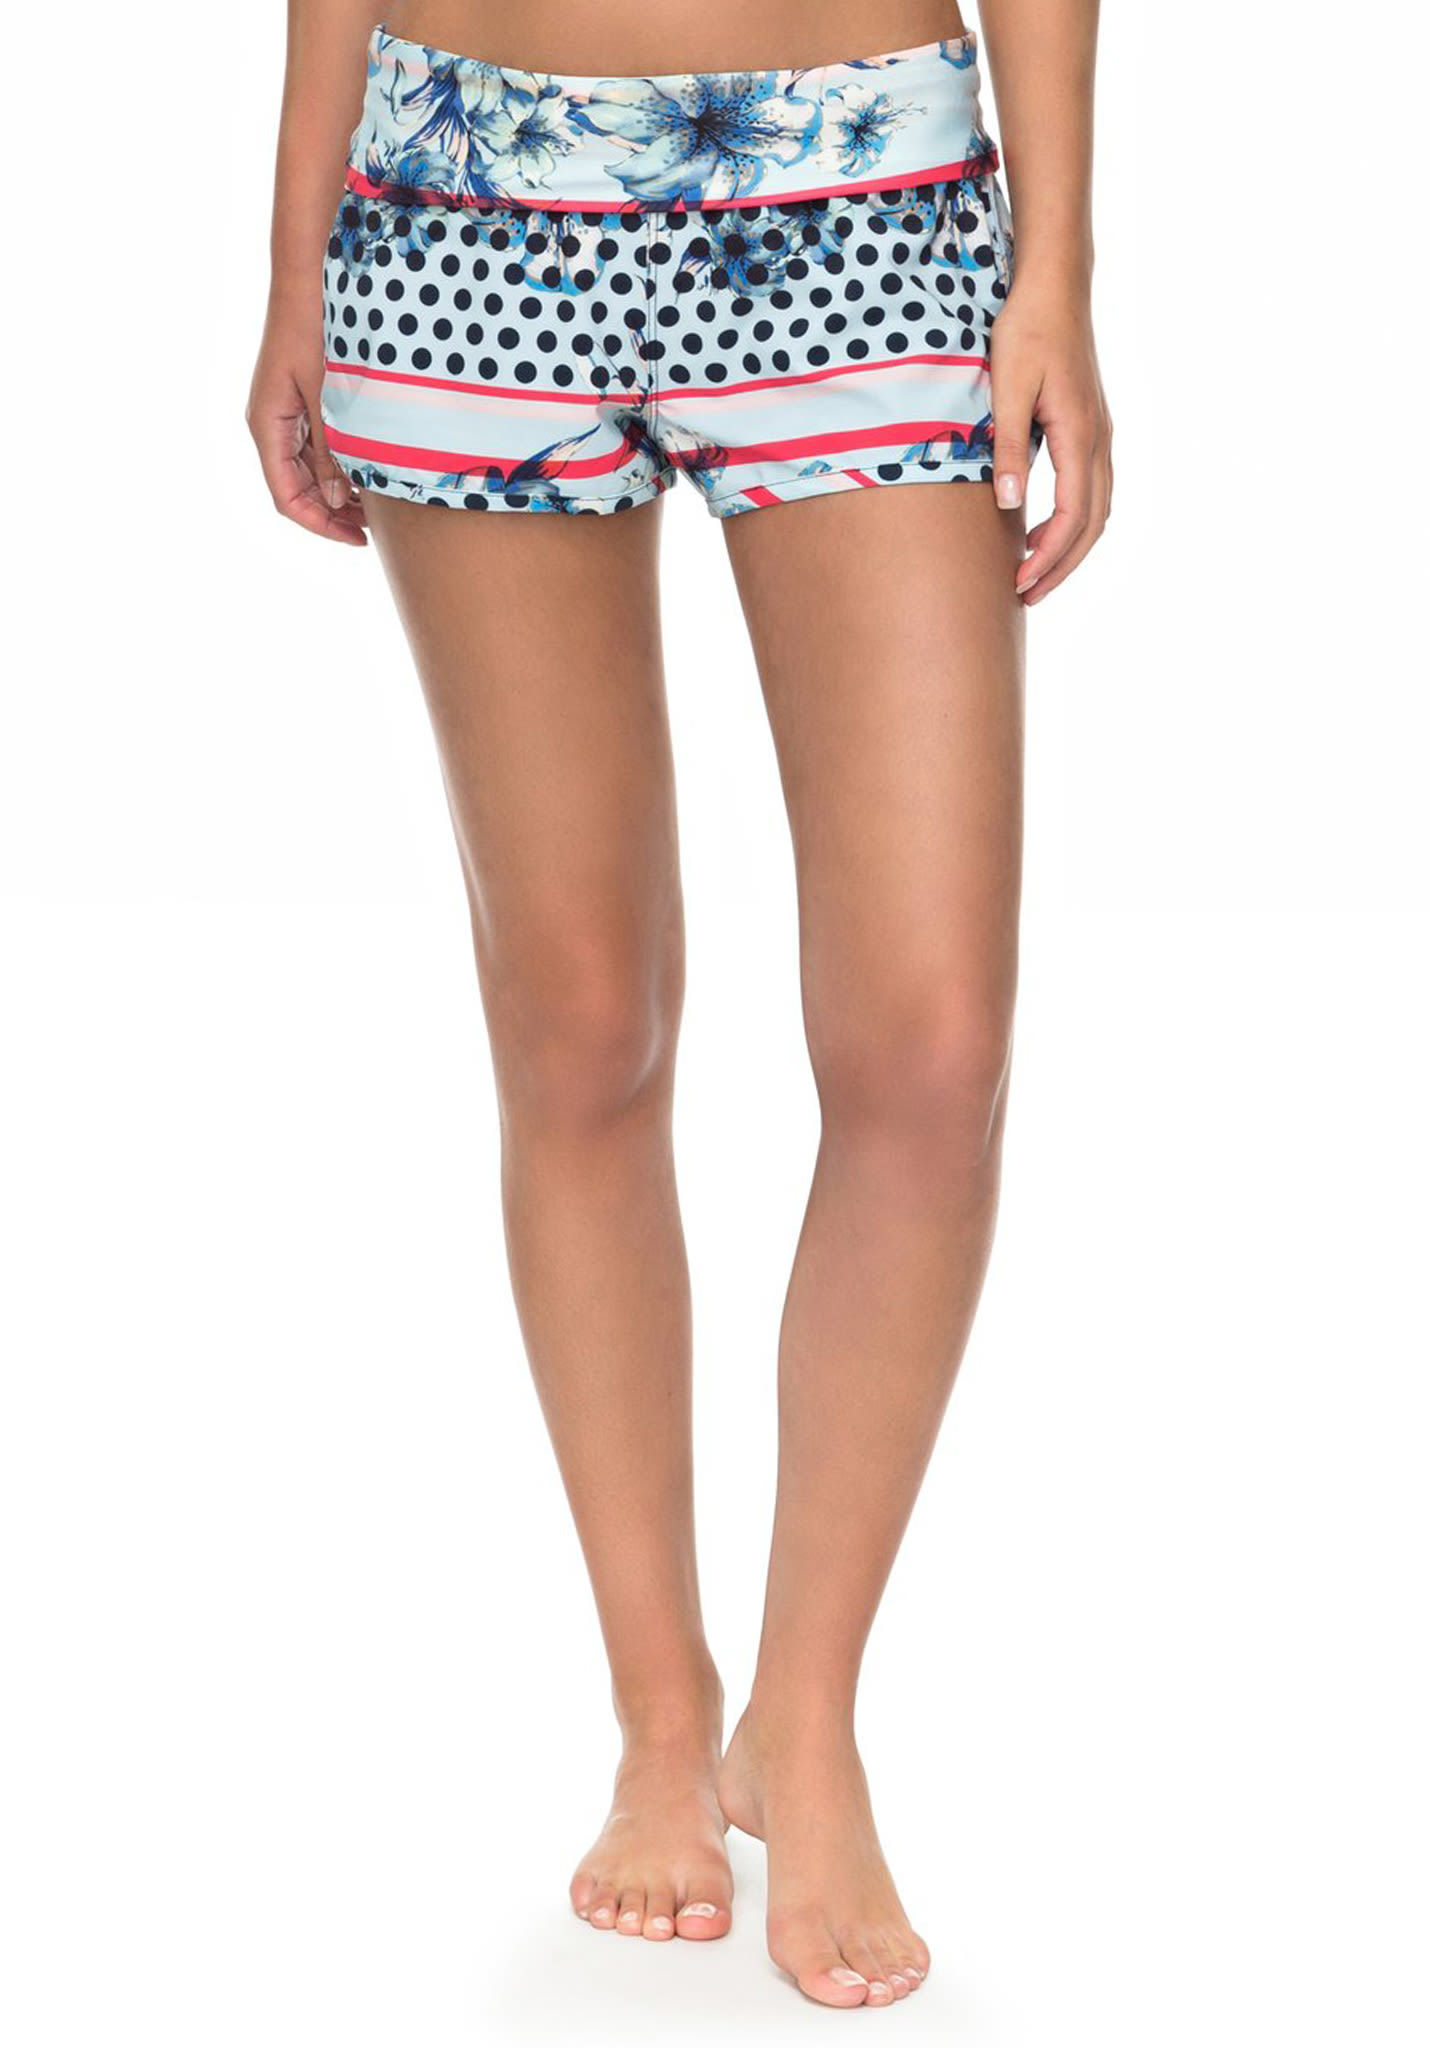 1a0197855d0eb Roxy Endless Summer - Boardshorts for Women - Blue - Planet Sports